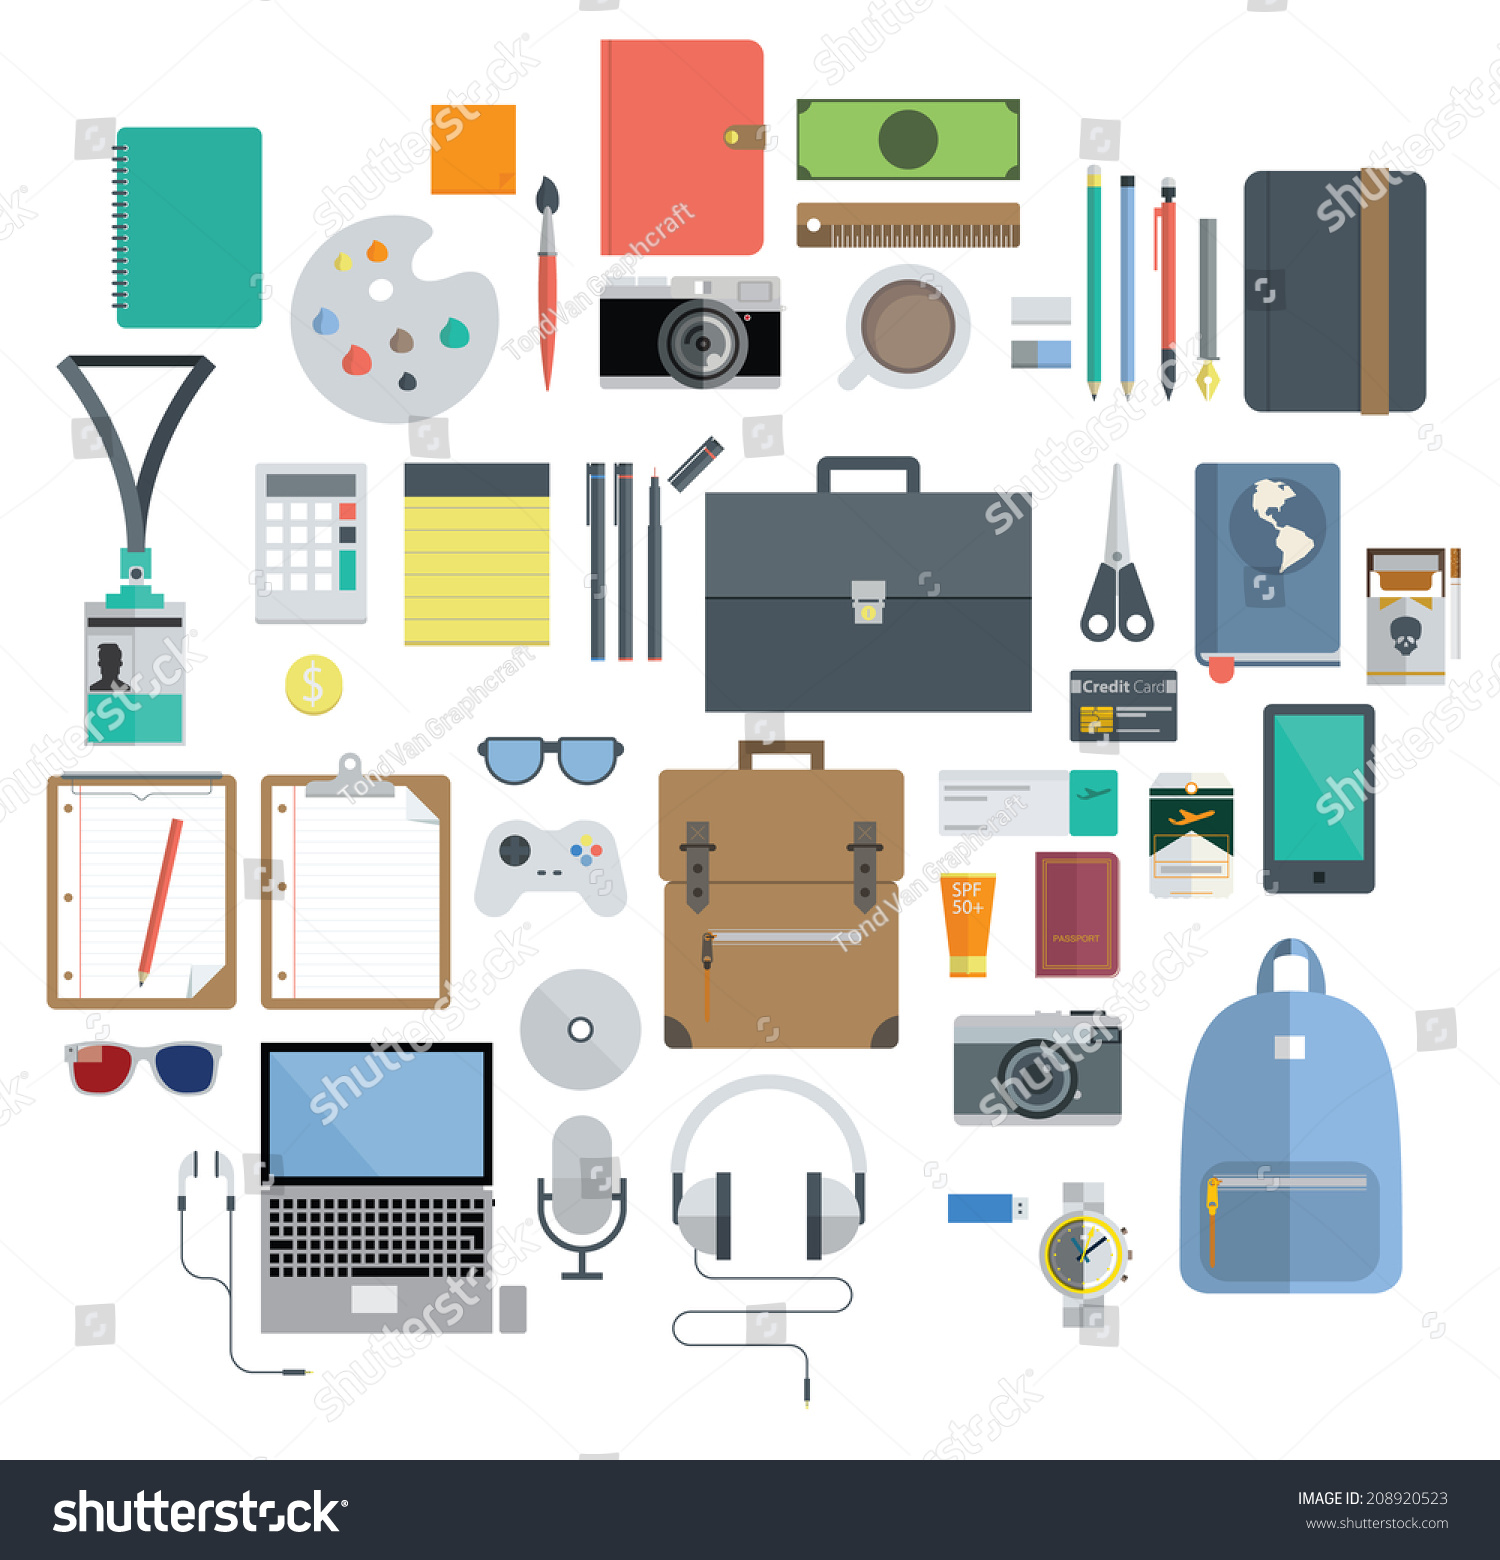 Icon Set Of Office Equipment Travel Gadget And Hobby In Flat Design Vector 208920523